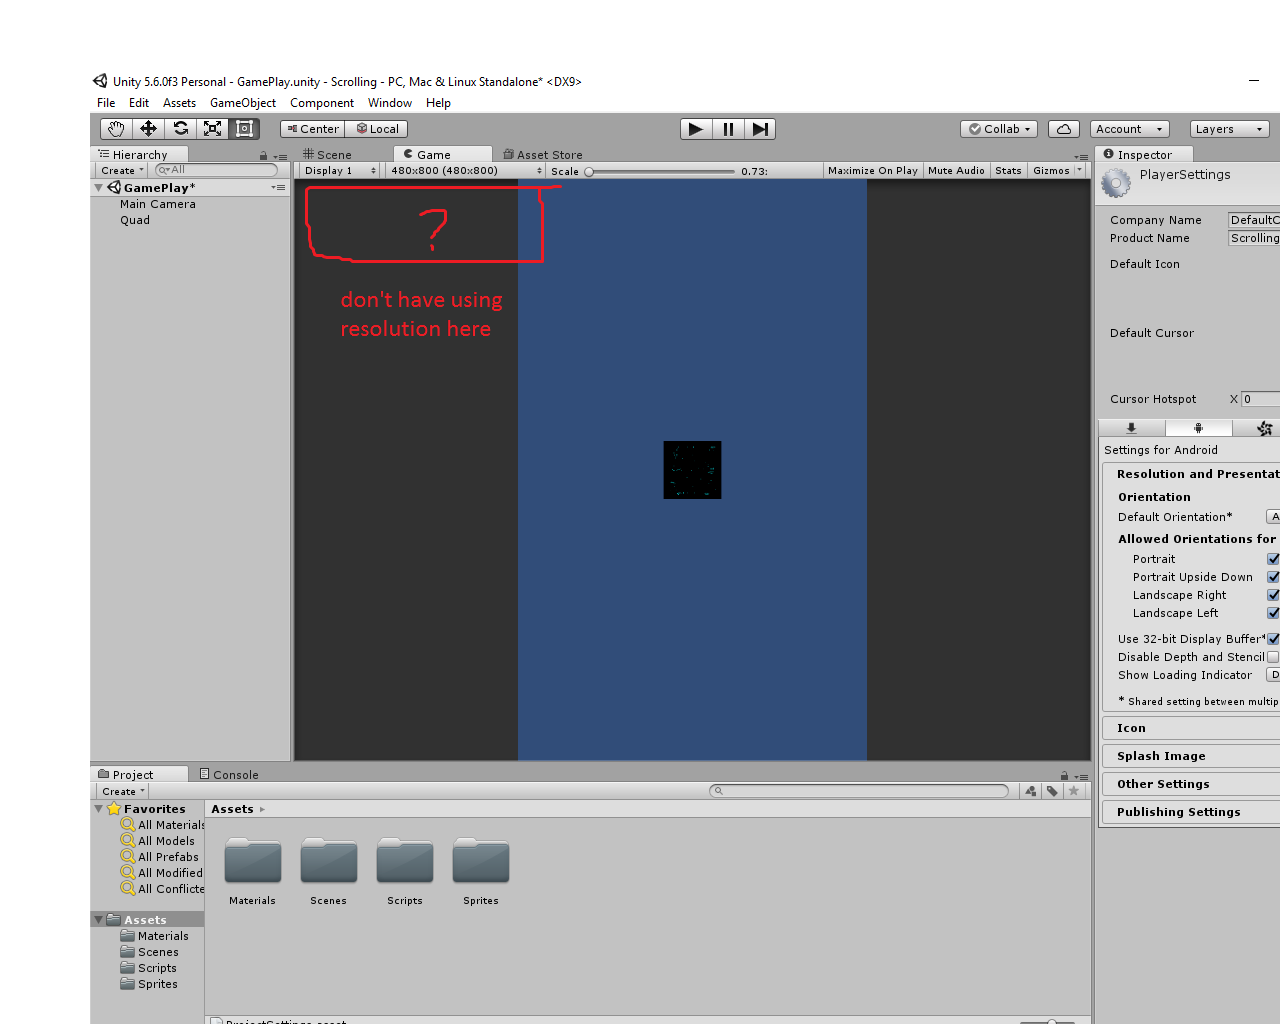 how to appear using resolution in unit - Unity Answers